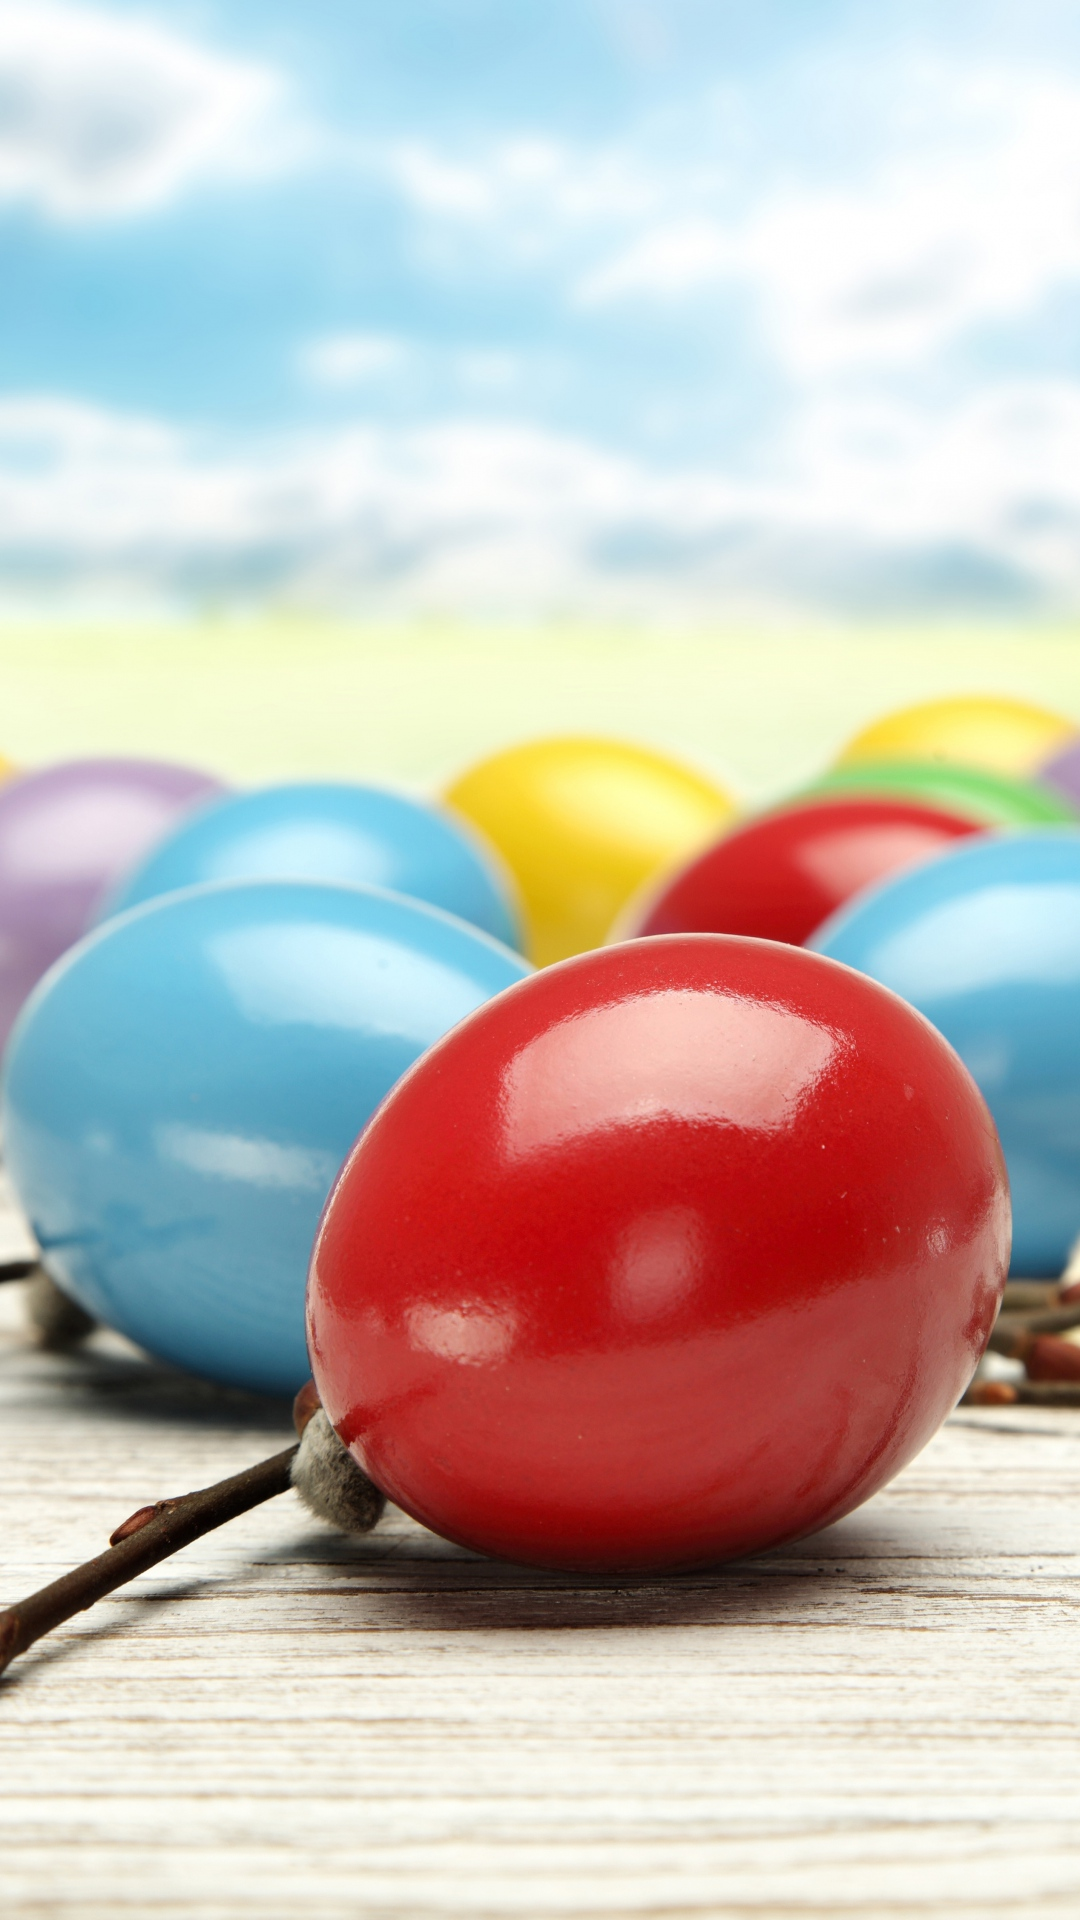 Free Download Colorful Easter Eggs Iphone 6 Wallpaper Download